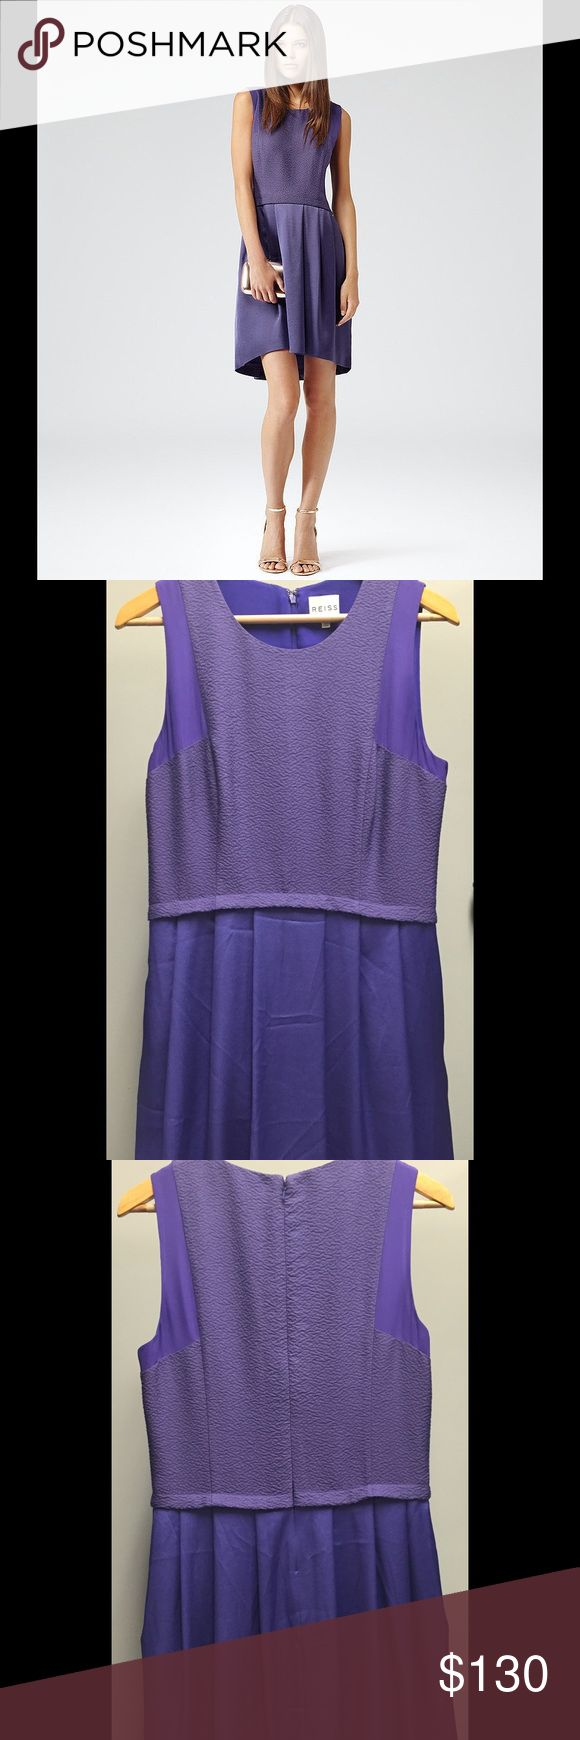 REISS purple textured Gigi dress (EUC!) Only worn a handful of times, this gorgeous REISS dress is in excellent used condition with no damage! Only wrinkles in pics. Dress features a purple textured bodice with silk trim and back zip and hook eye closure. Dress has slight hi-lo cut as shown on model and great movement. Purchased in a London Reiss store it is UK size 12/ US 8. Love this dress! Not quite sure I'm ready to let it go, but we'll see. Smoke free and pet free household. Reiss…